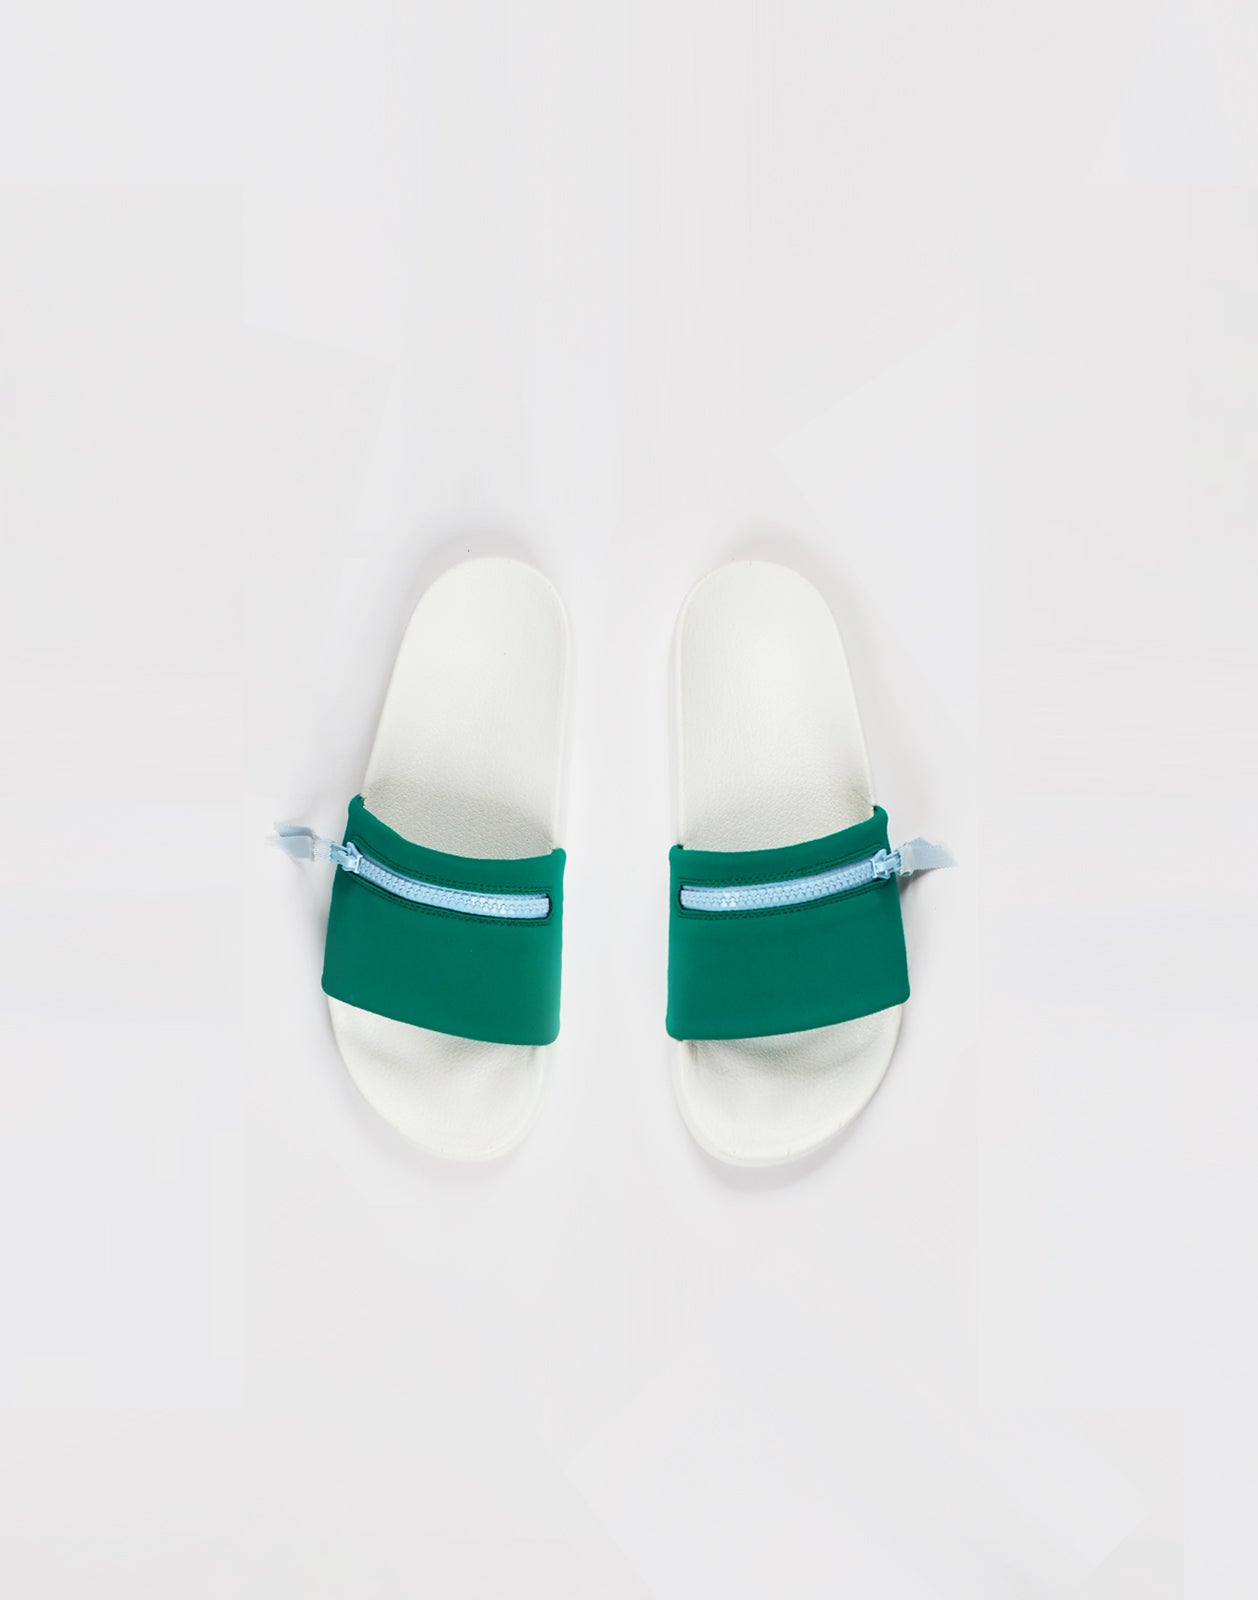 Green neoprene pool slides with zip.